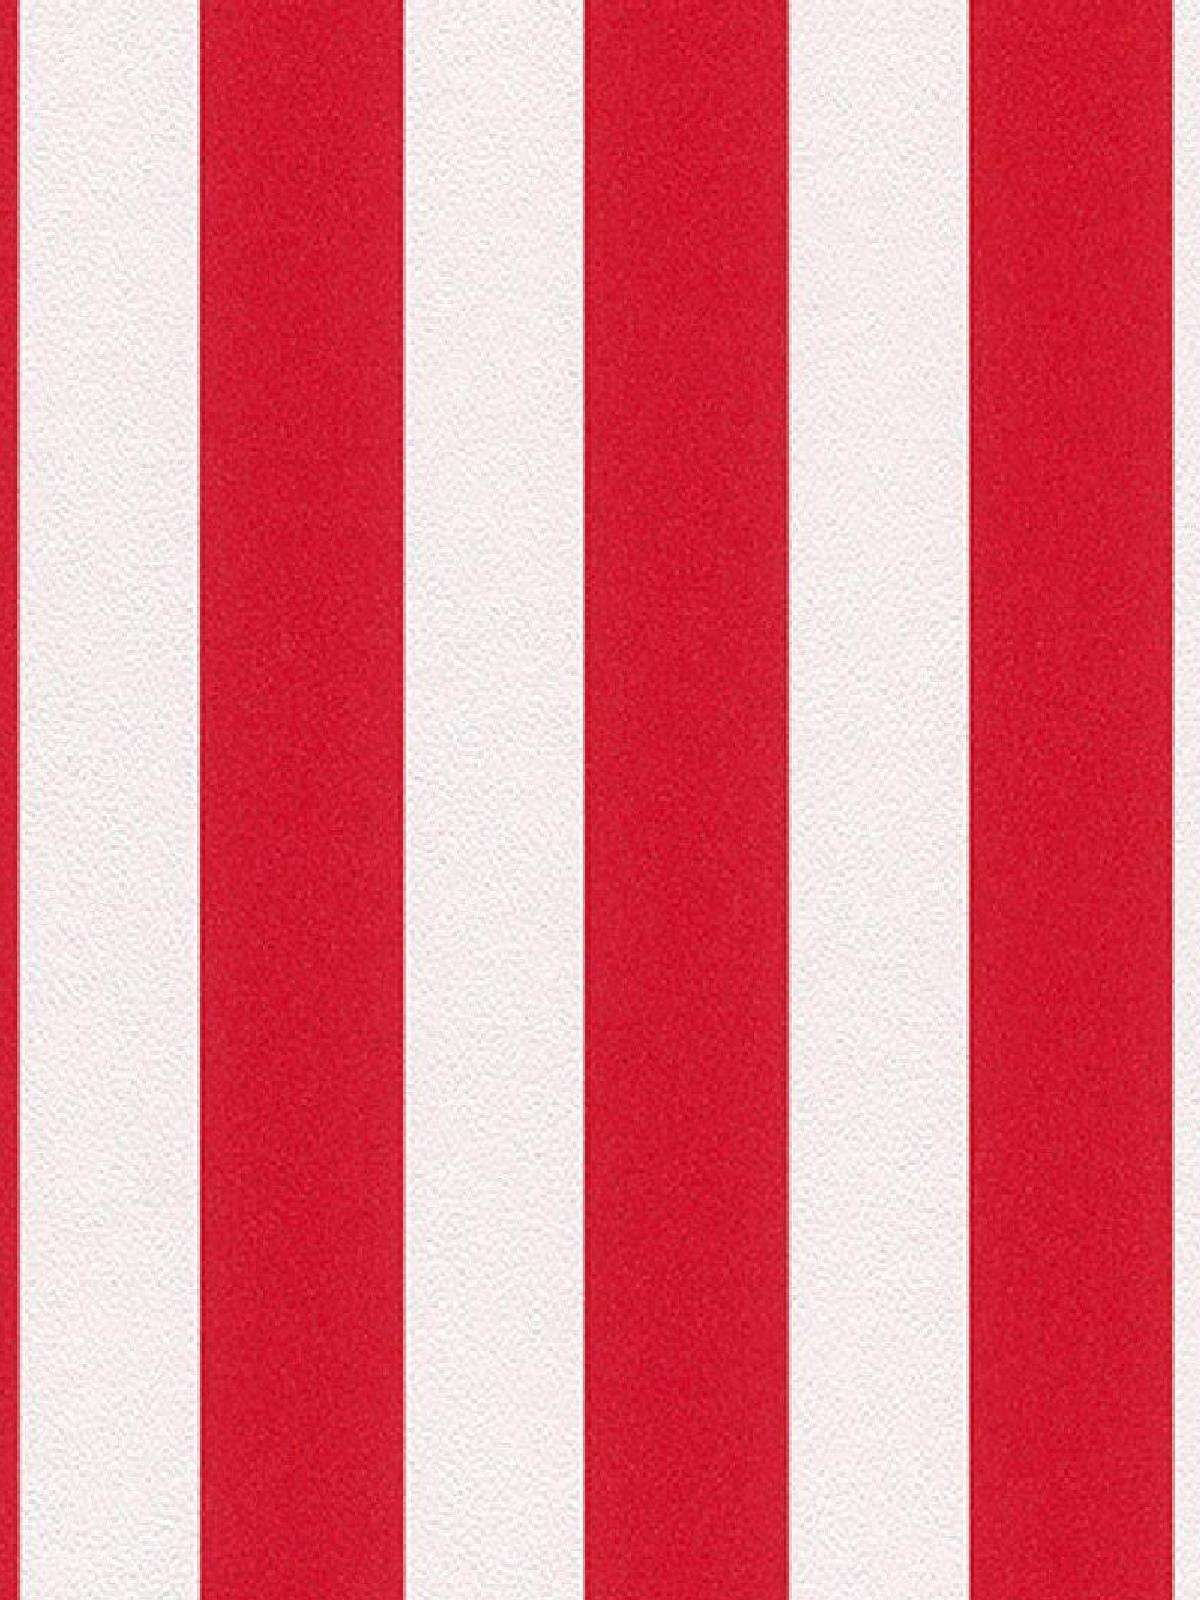 Red And White Stripes Wallpaper Walls And Floors Striped Wallpaper Red White Stripes Paint Finishes